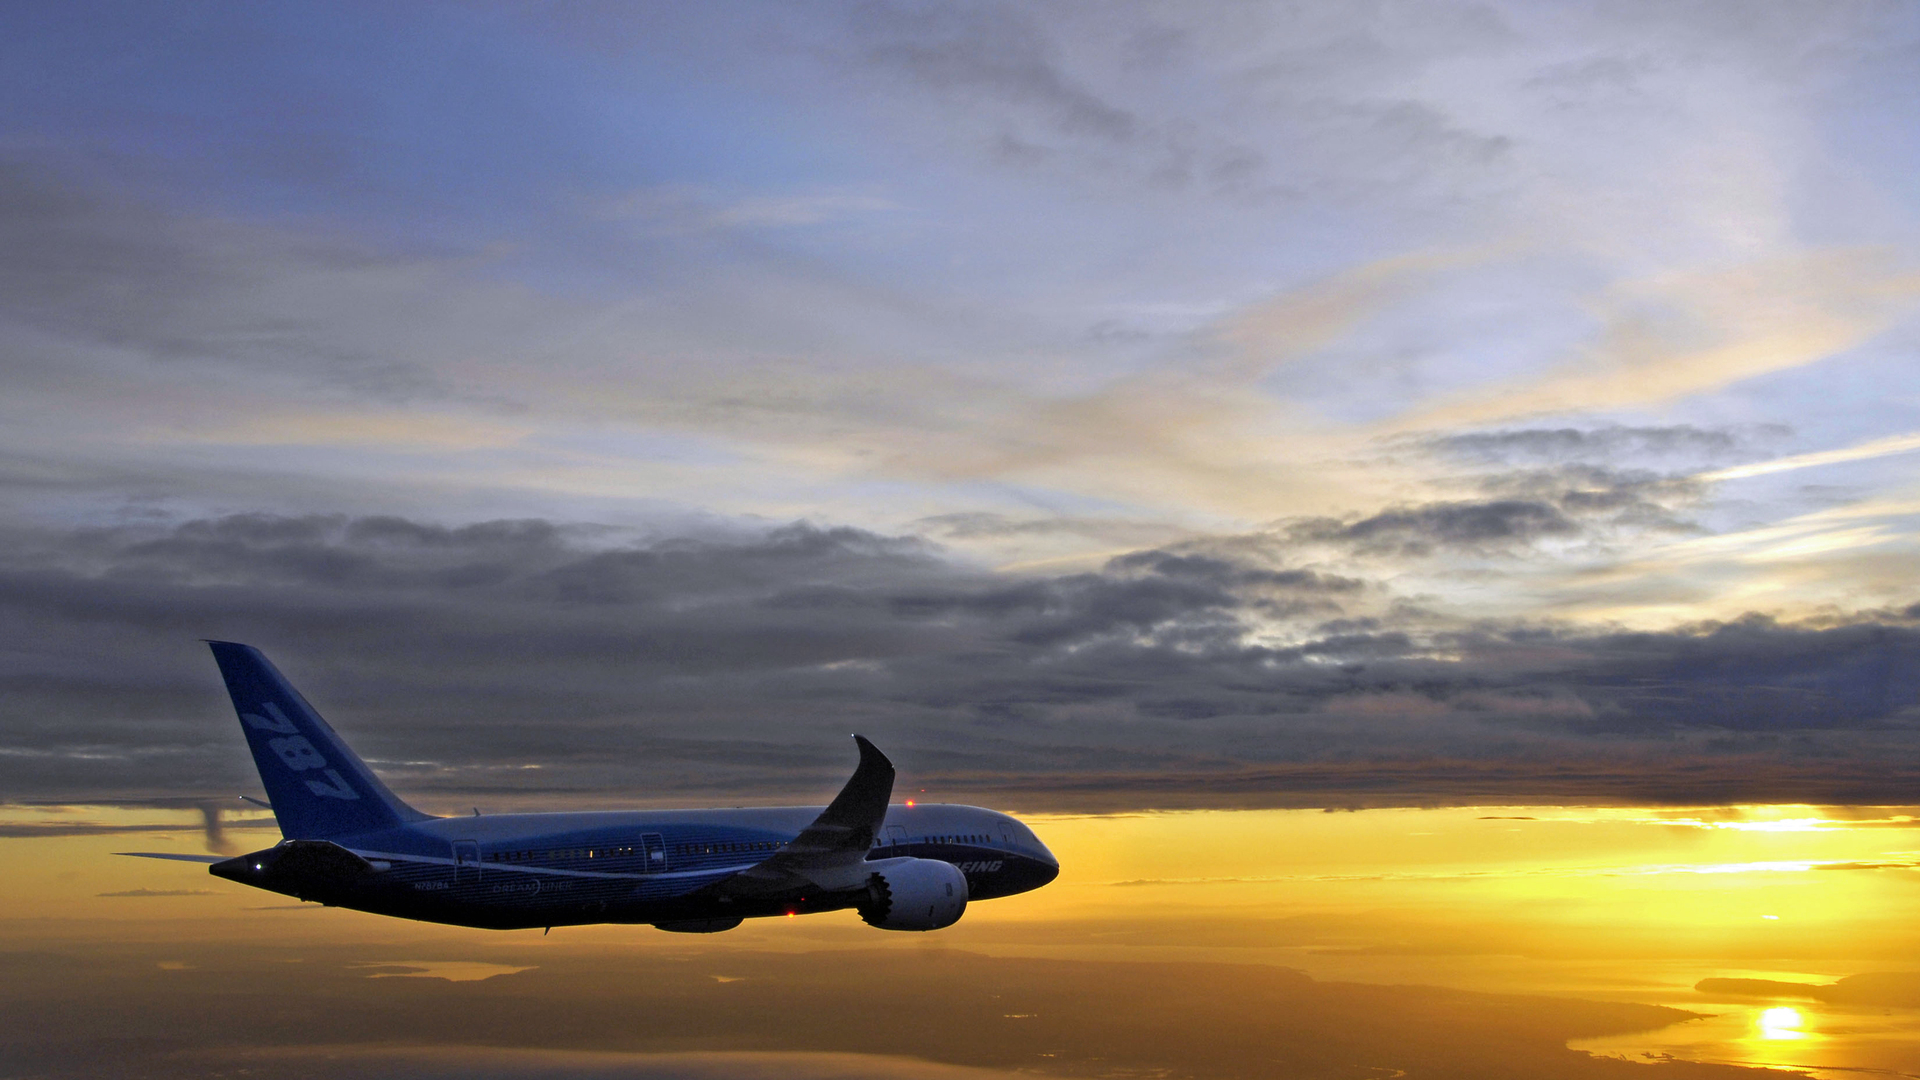 dreamliner wallpaper - photo #17